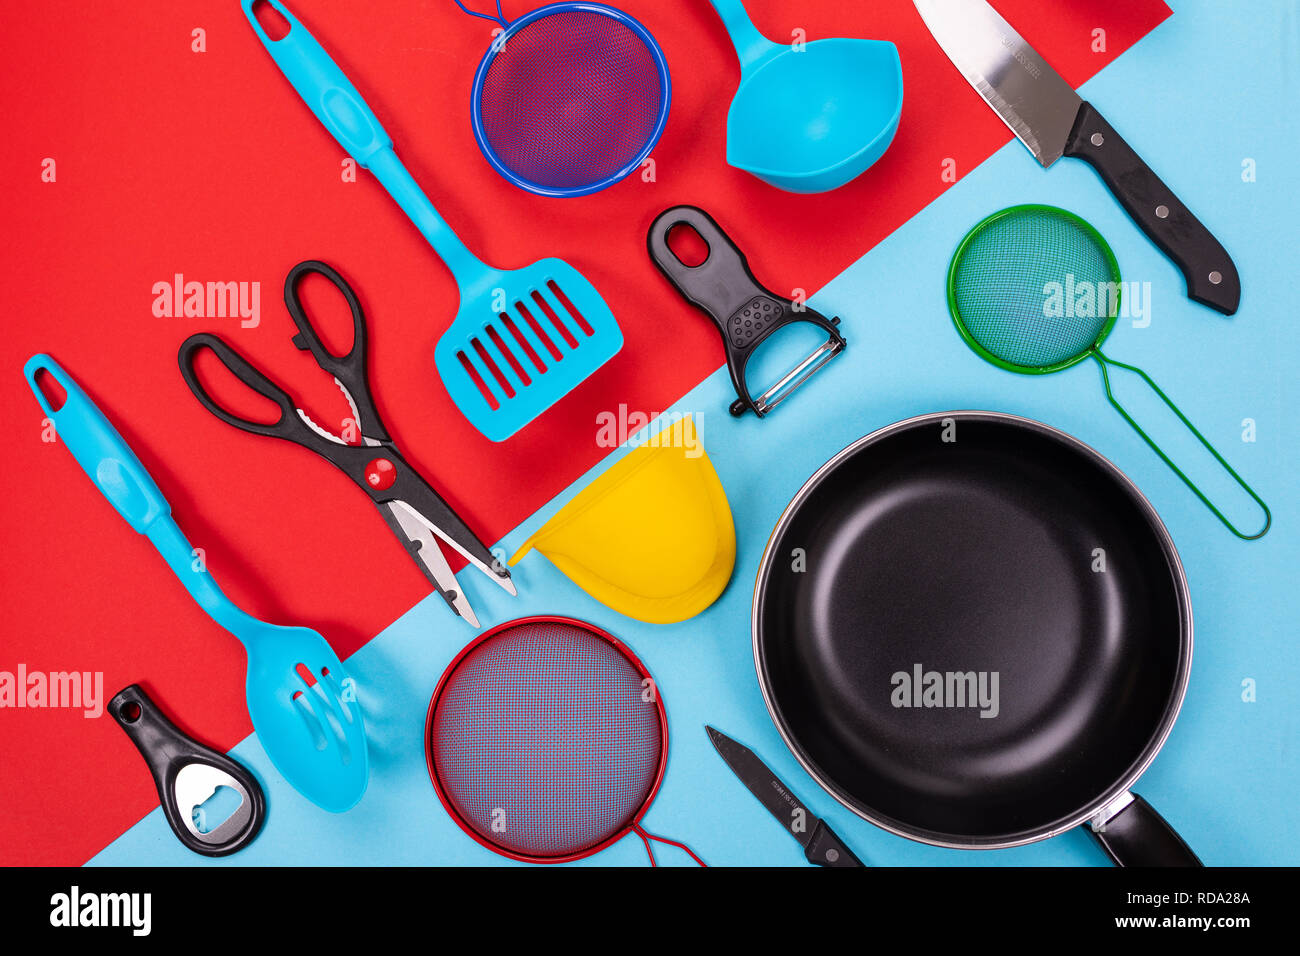 Close up portrait of frying pan with set of kitchen utensils on red-blue background Stock Photo